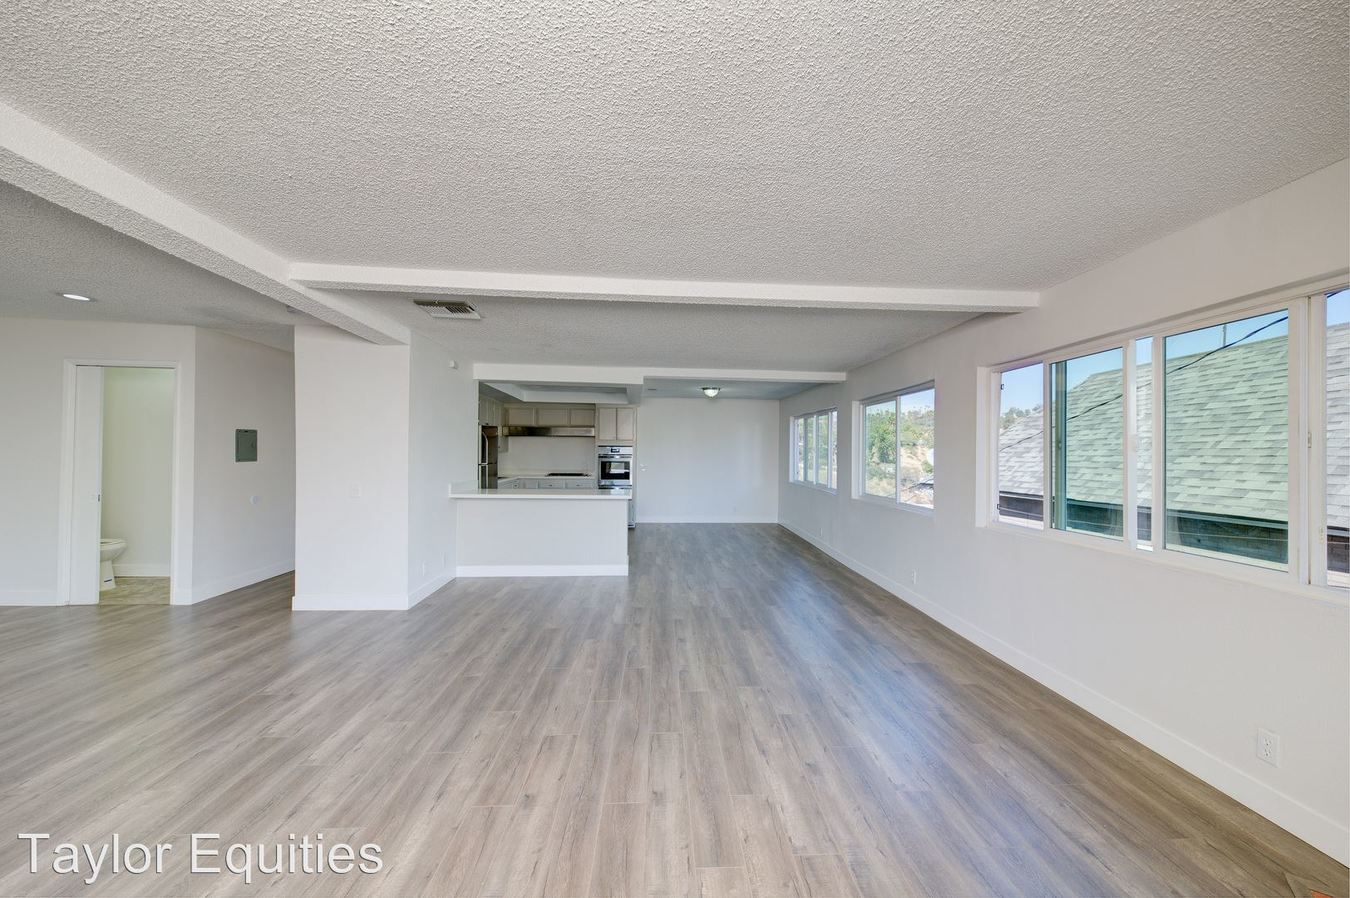 3 Bedrooms 2 Bathrooms Apartment for rent at 829 N Bunker Hill in Los Angeles, CA